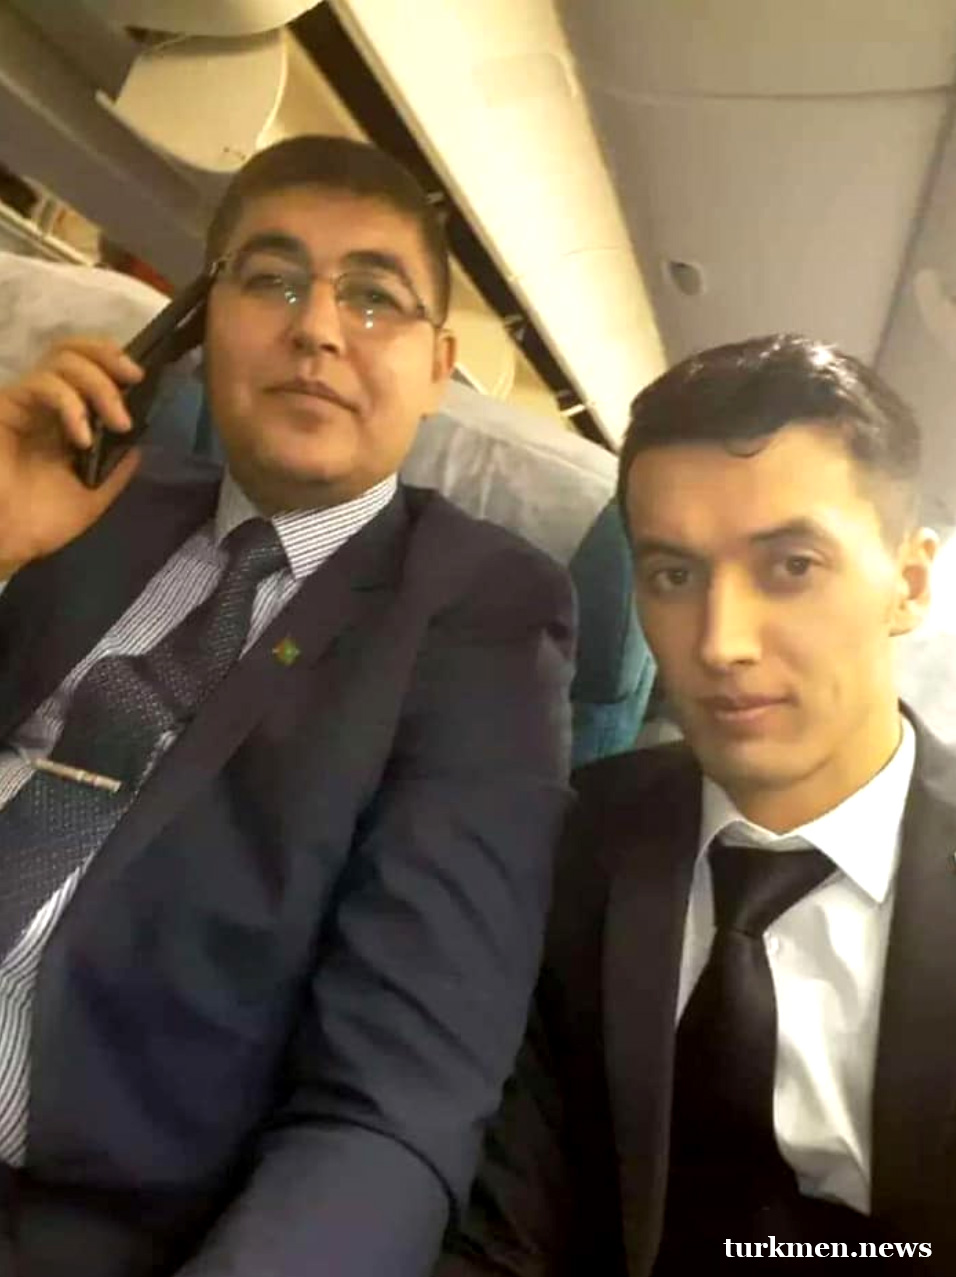 Student Omruzak Umarkuliev is Flying to Turkmenistan. Lured There On False Pretences, He's Been Sentenced to a Lengthy Prison Term